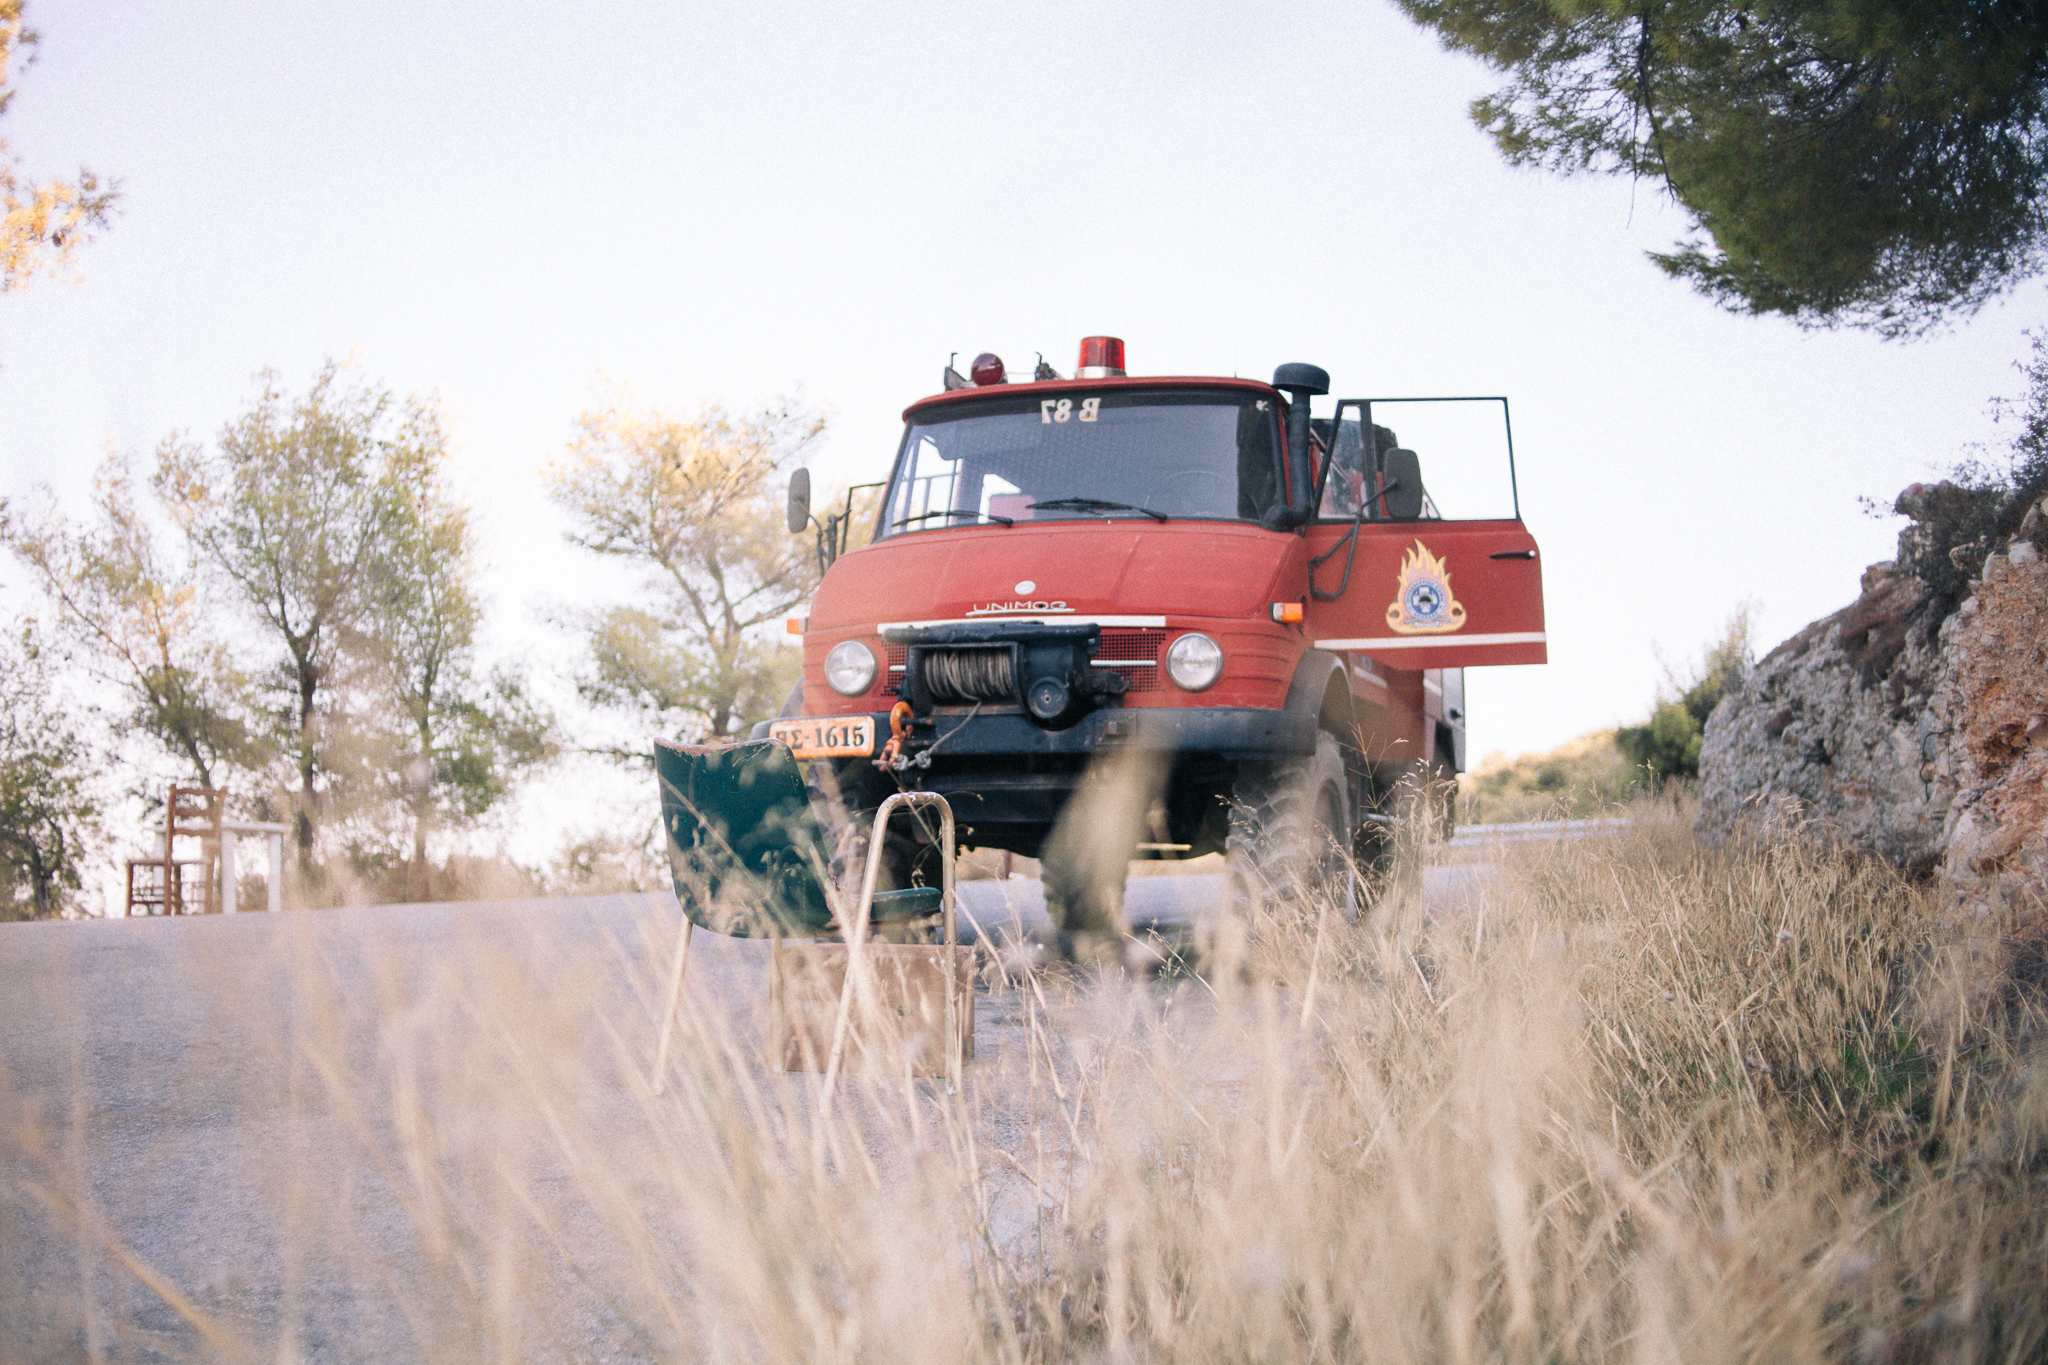 The only firetruck on the island, a Unimog 406